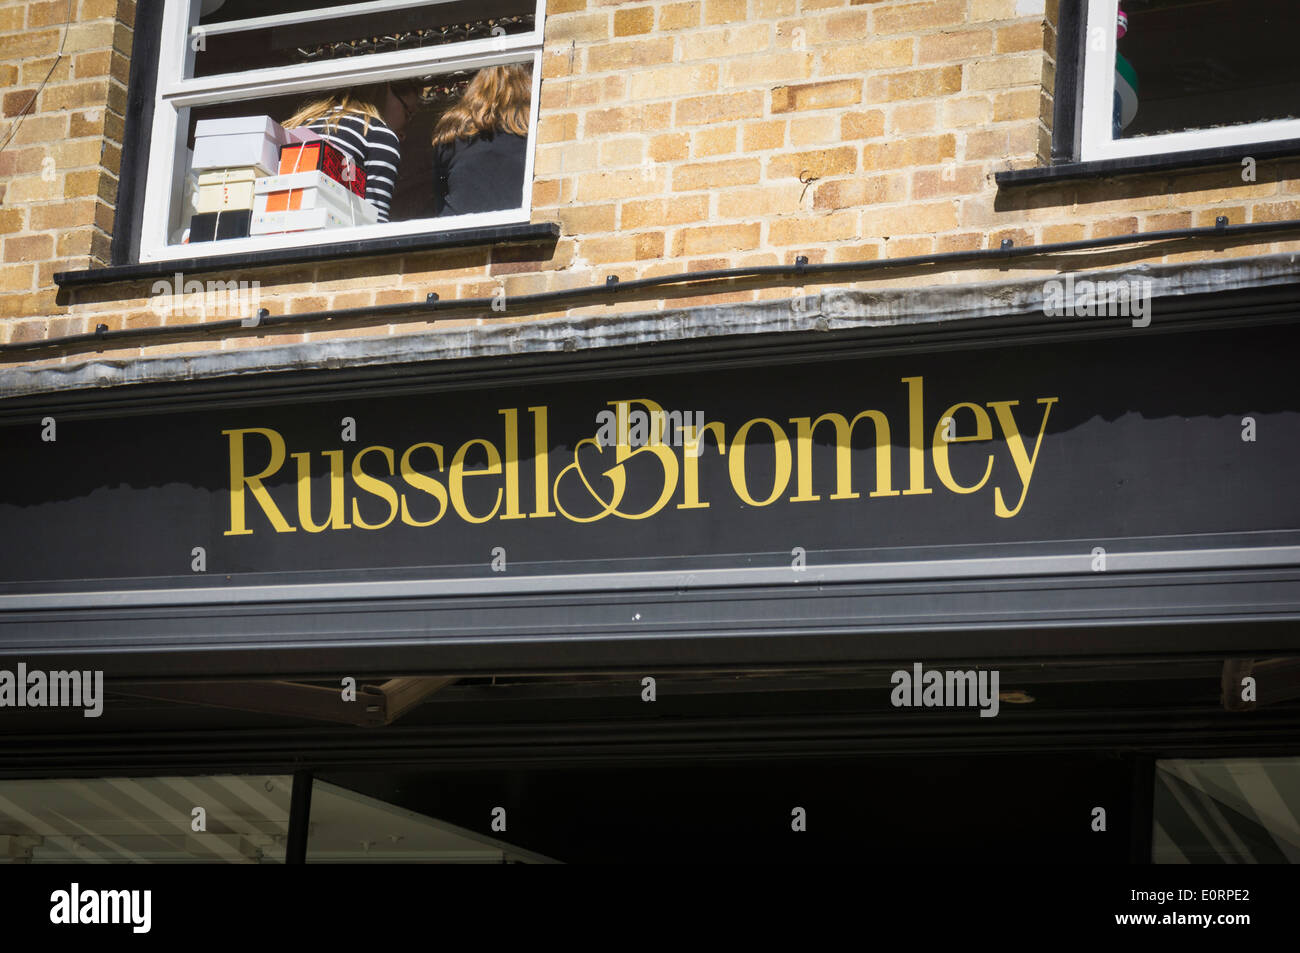 Russell and Bromley shoe store logo, UK - Stock Image